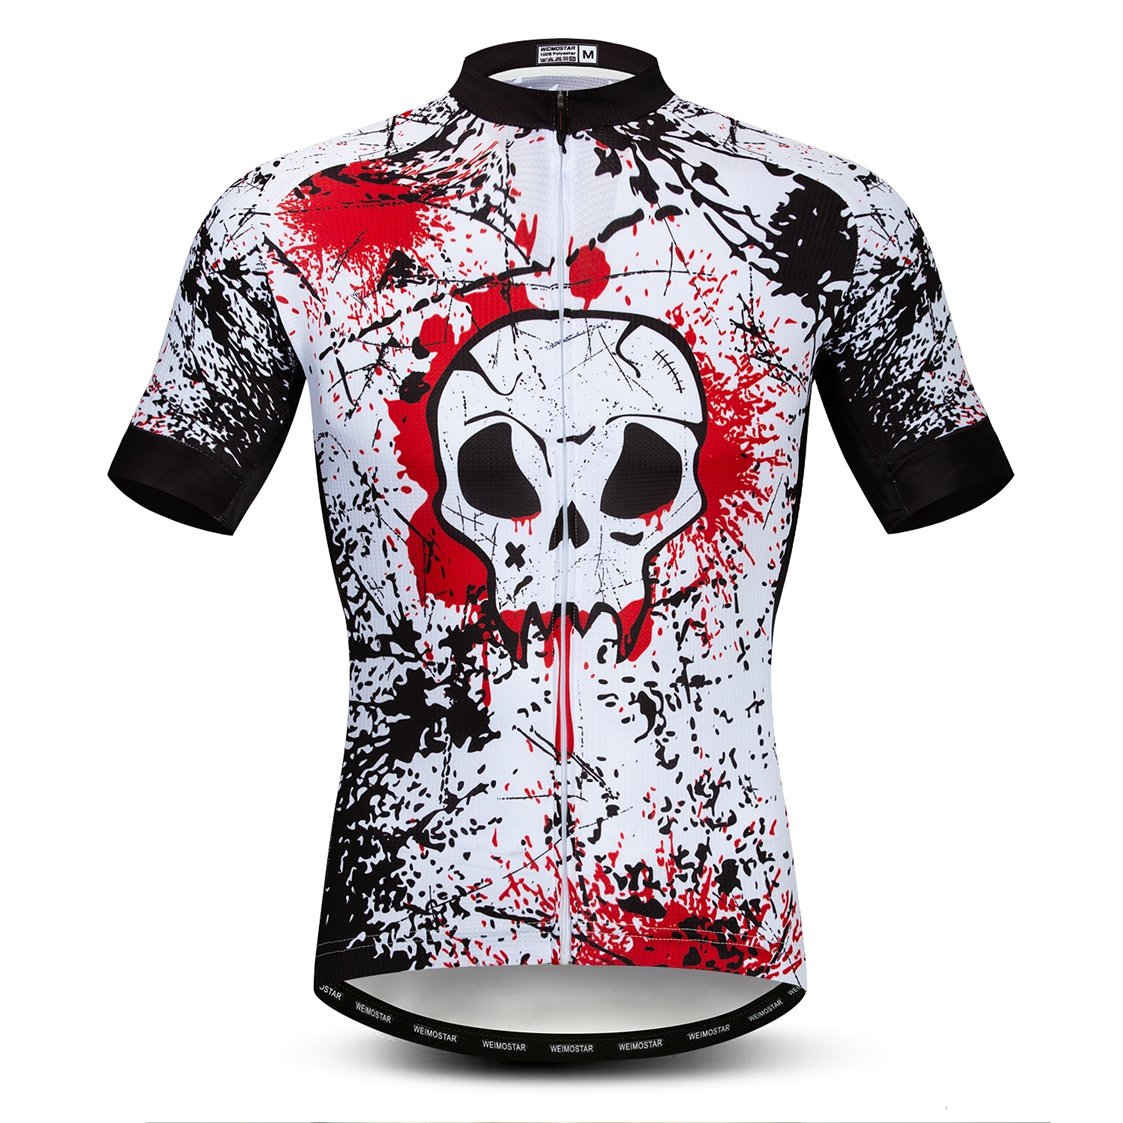 weimostar Cycling Jersey Men bike clothing bicycle jersey top Mountain Road  MTB jersey short sleeve Summer  Amazon.co.uk  Sports   Outdoors ed321d381